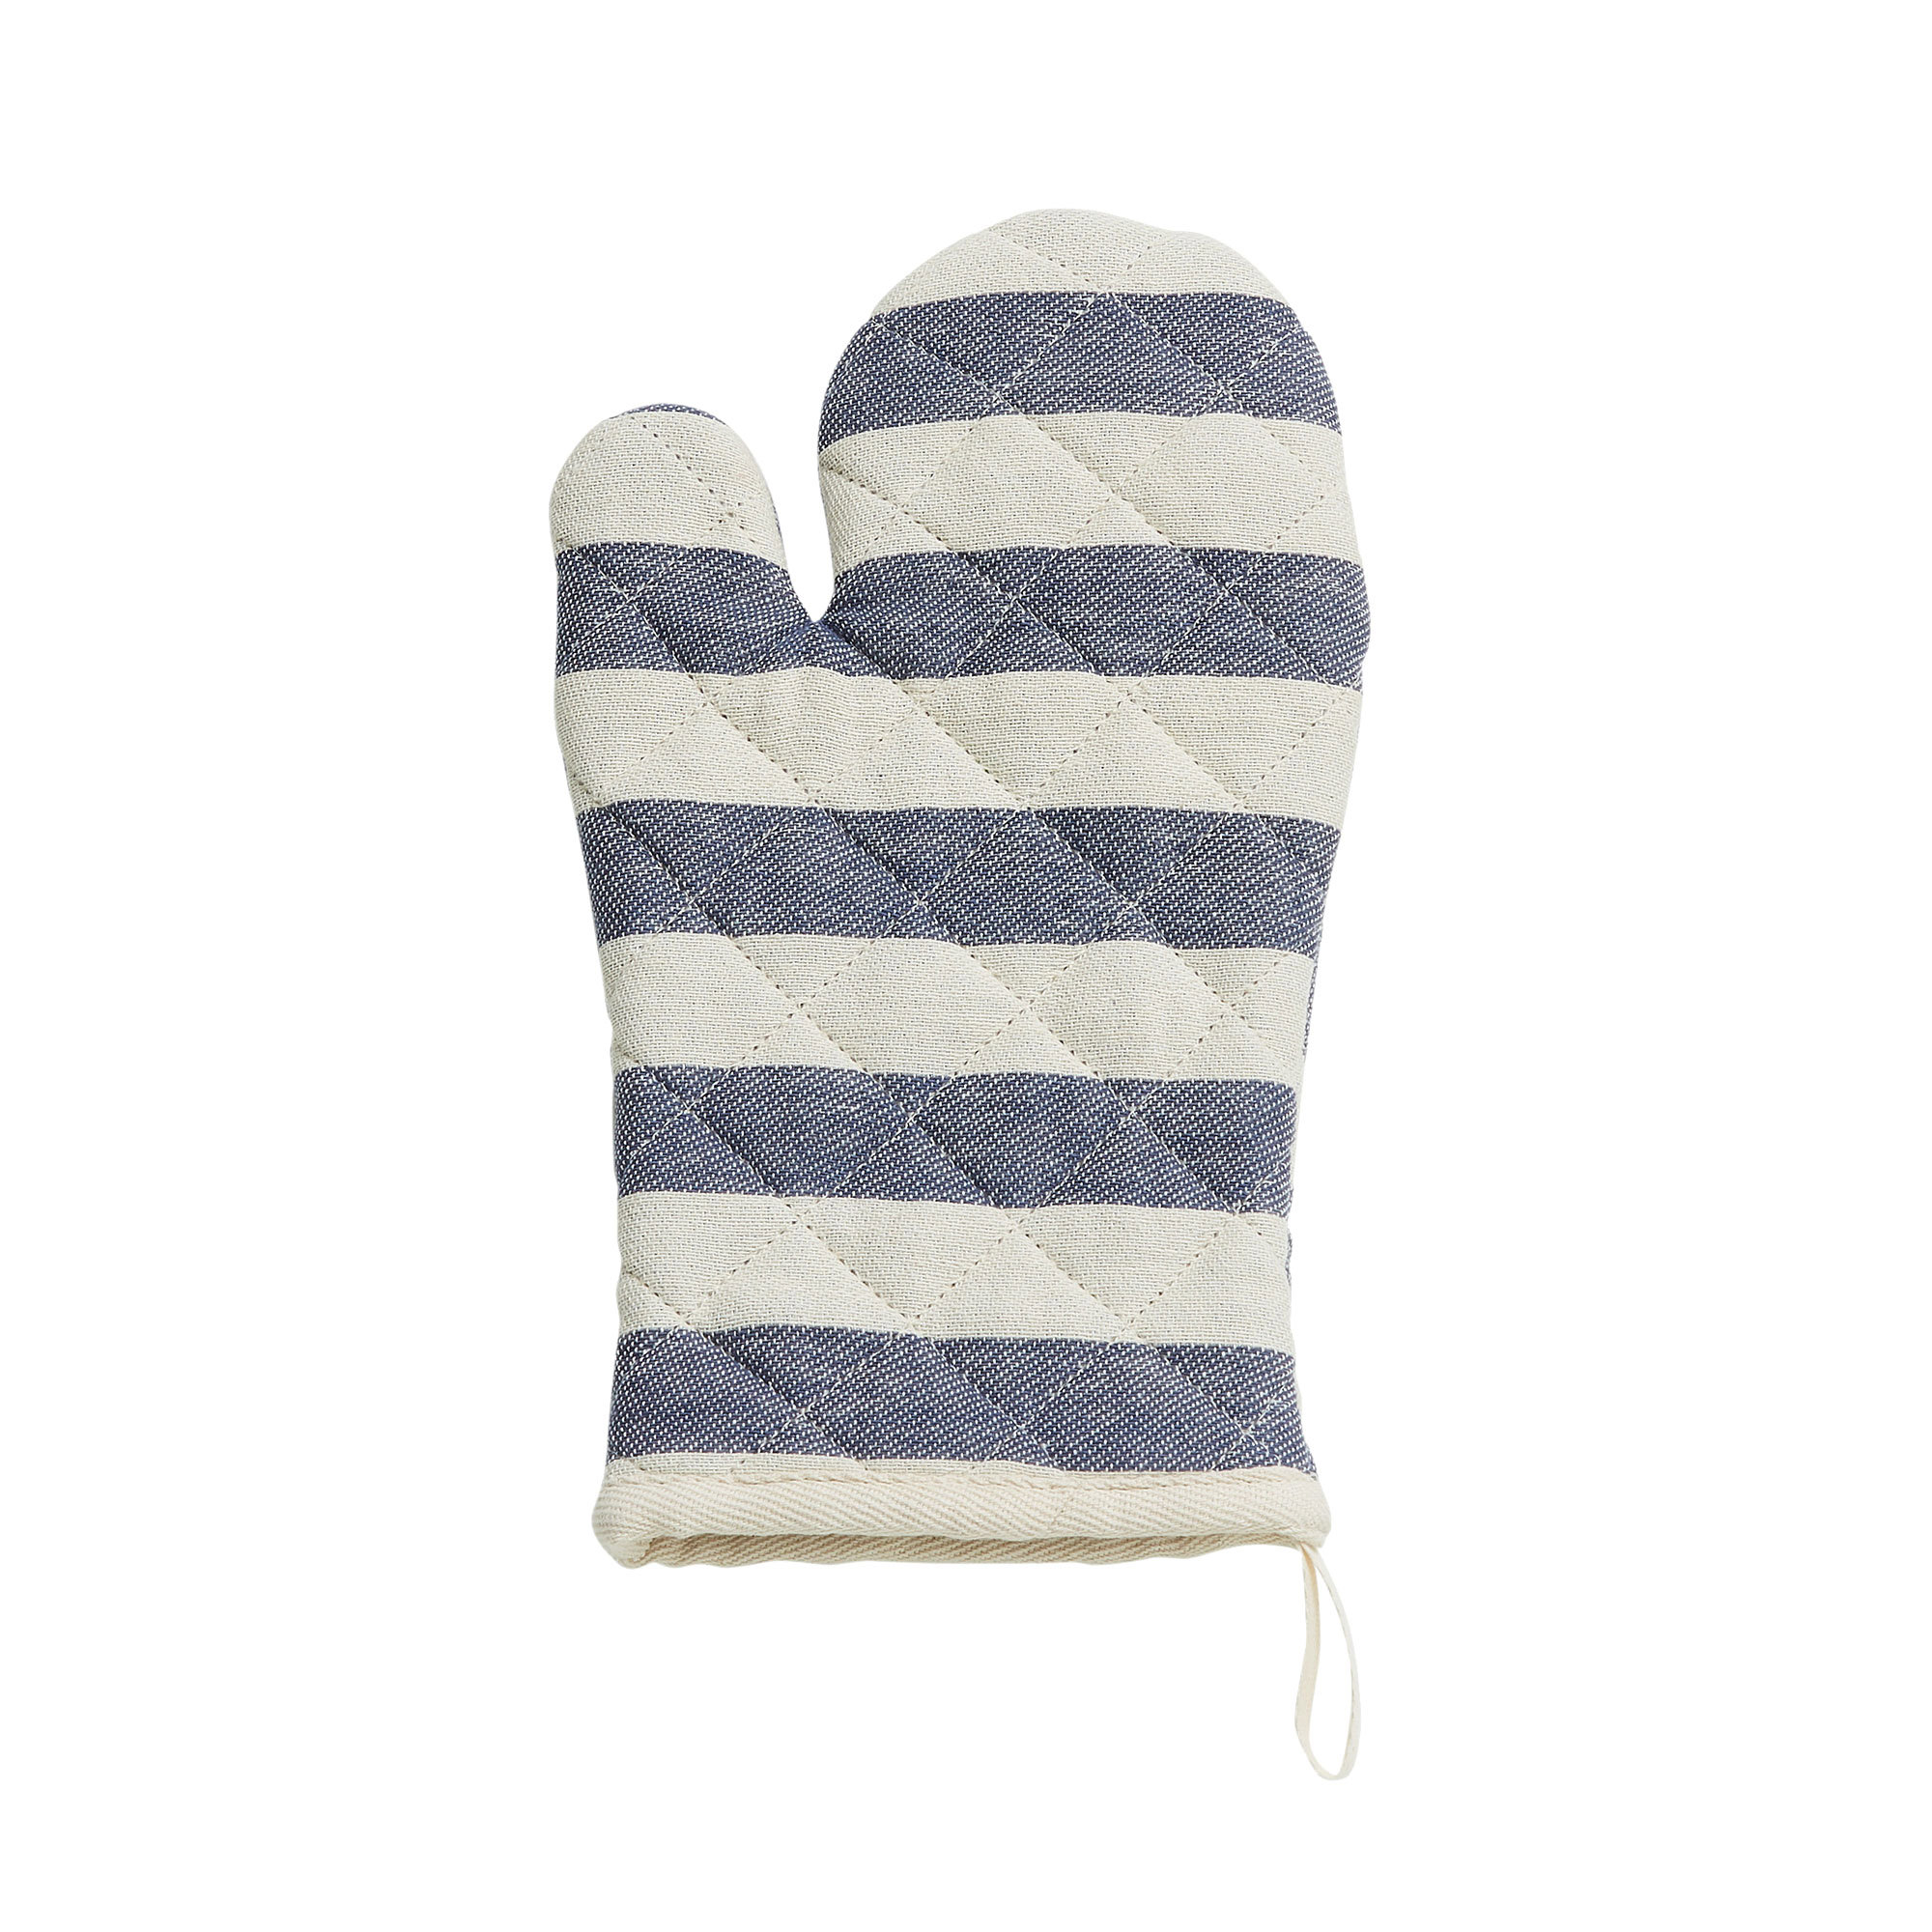 Salisbury & Co Bristol Oven Glove Blue